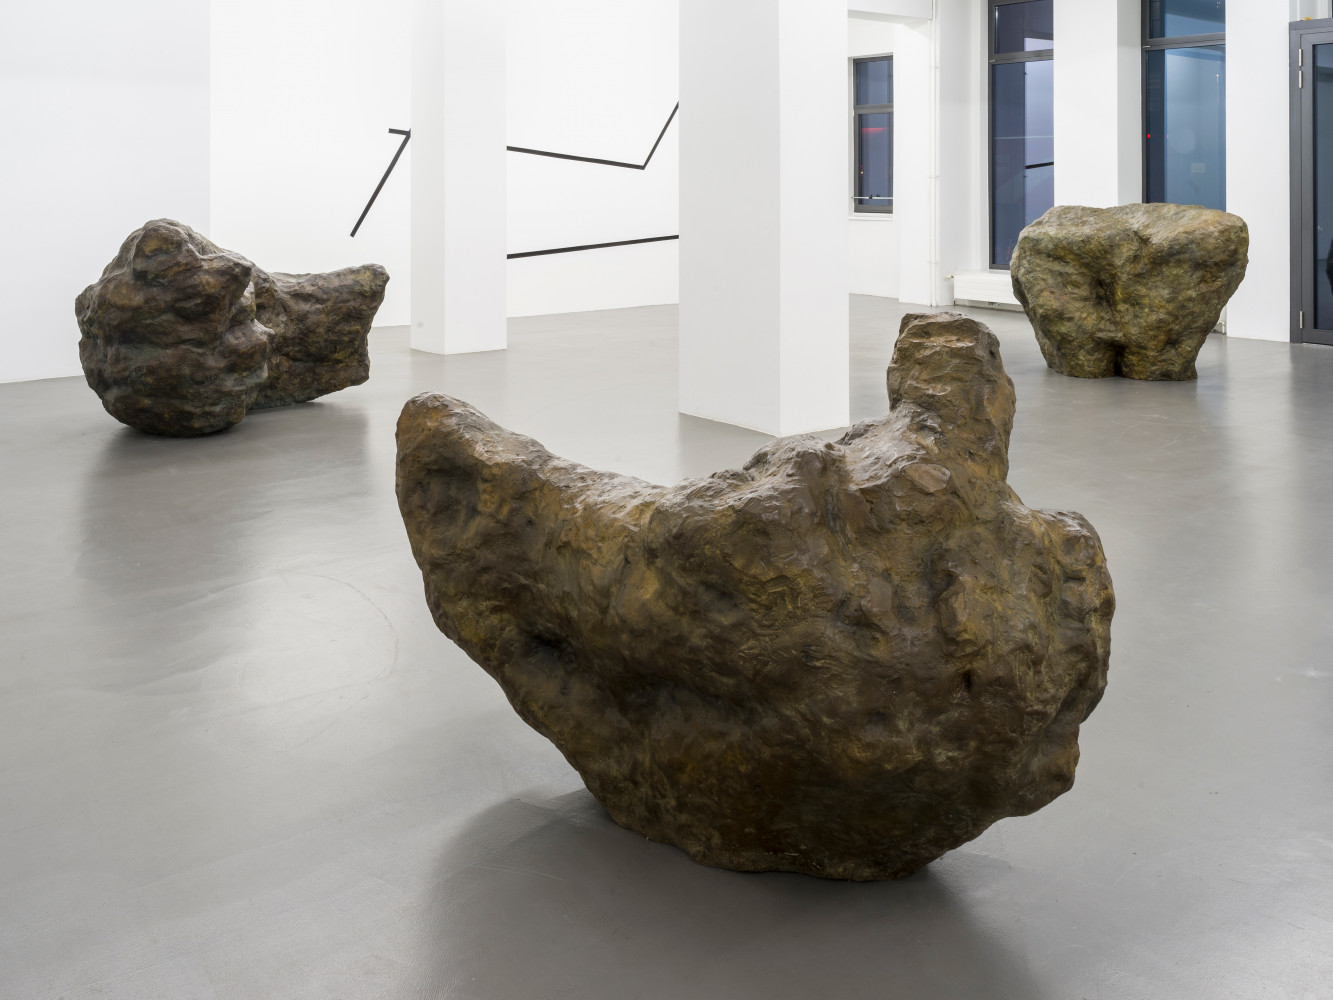 William Tucker, Installation view, Buchmann Galerie, 2020